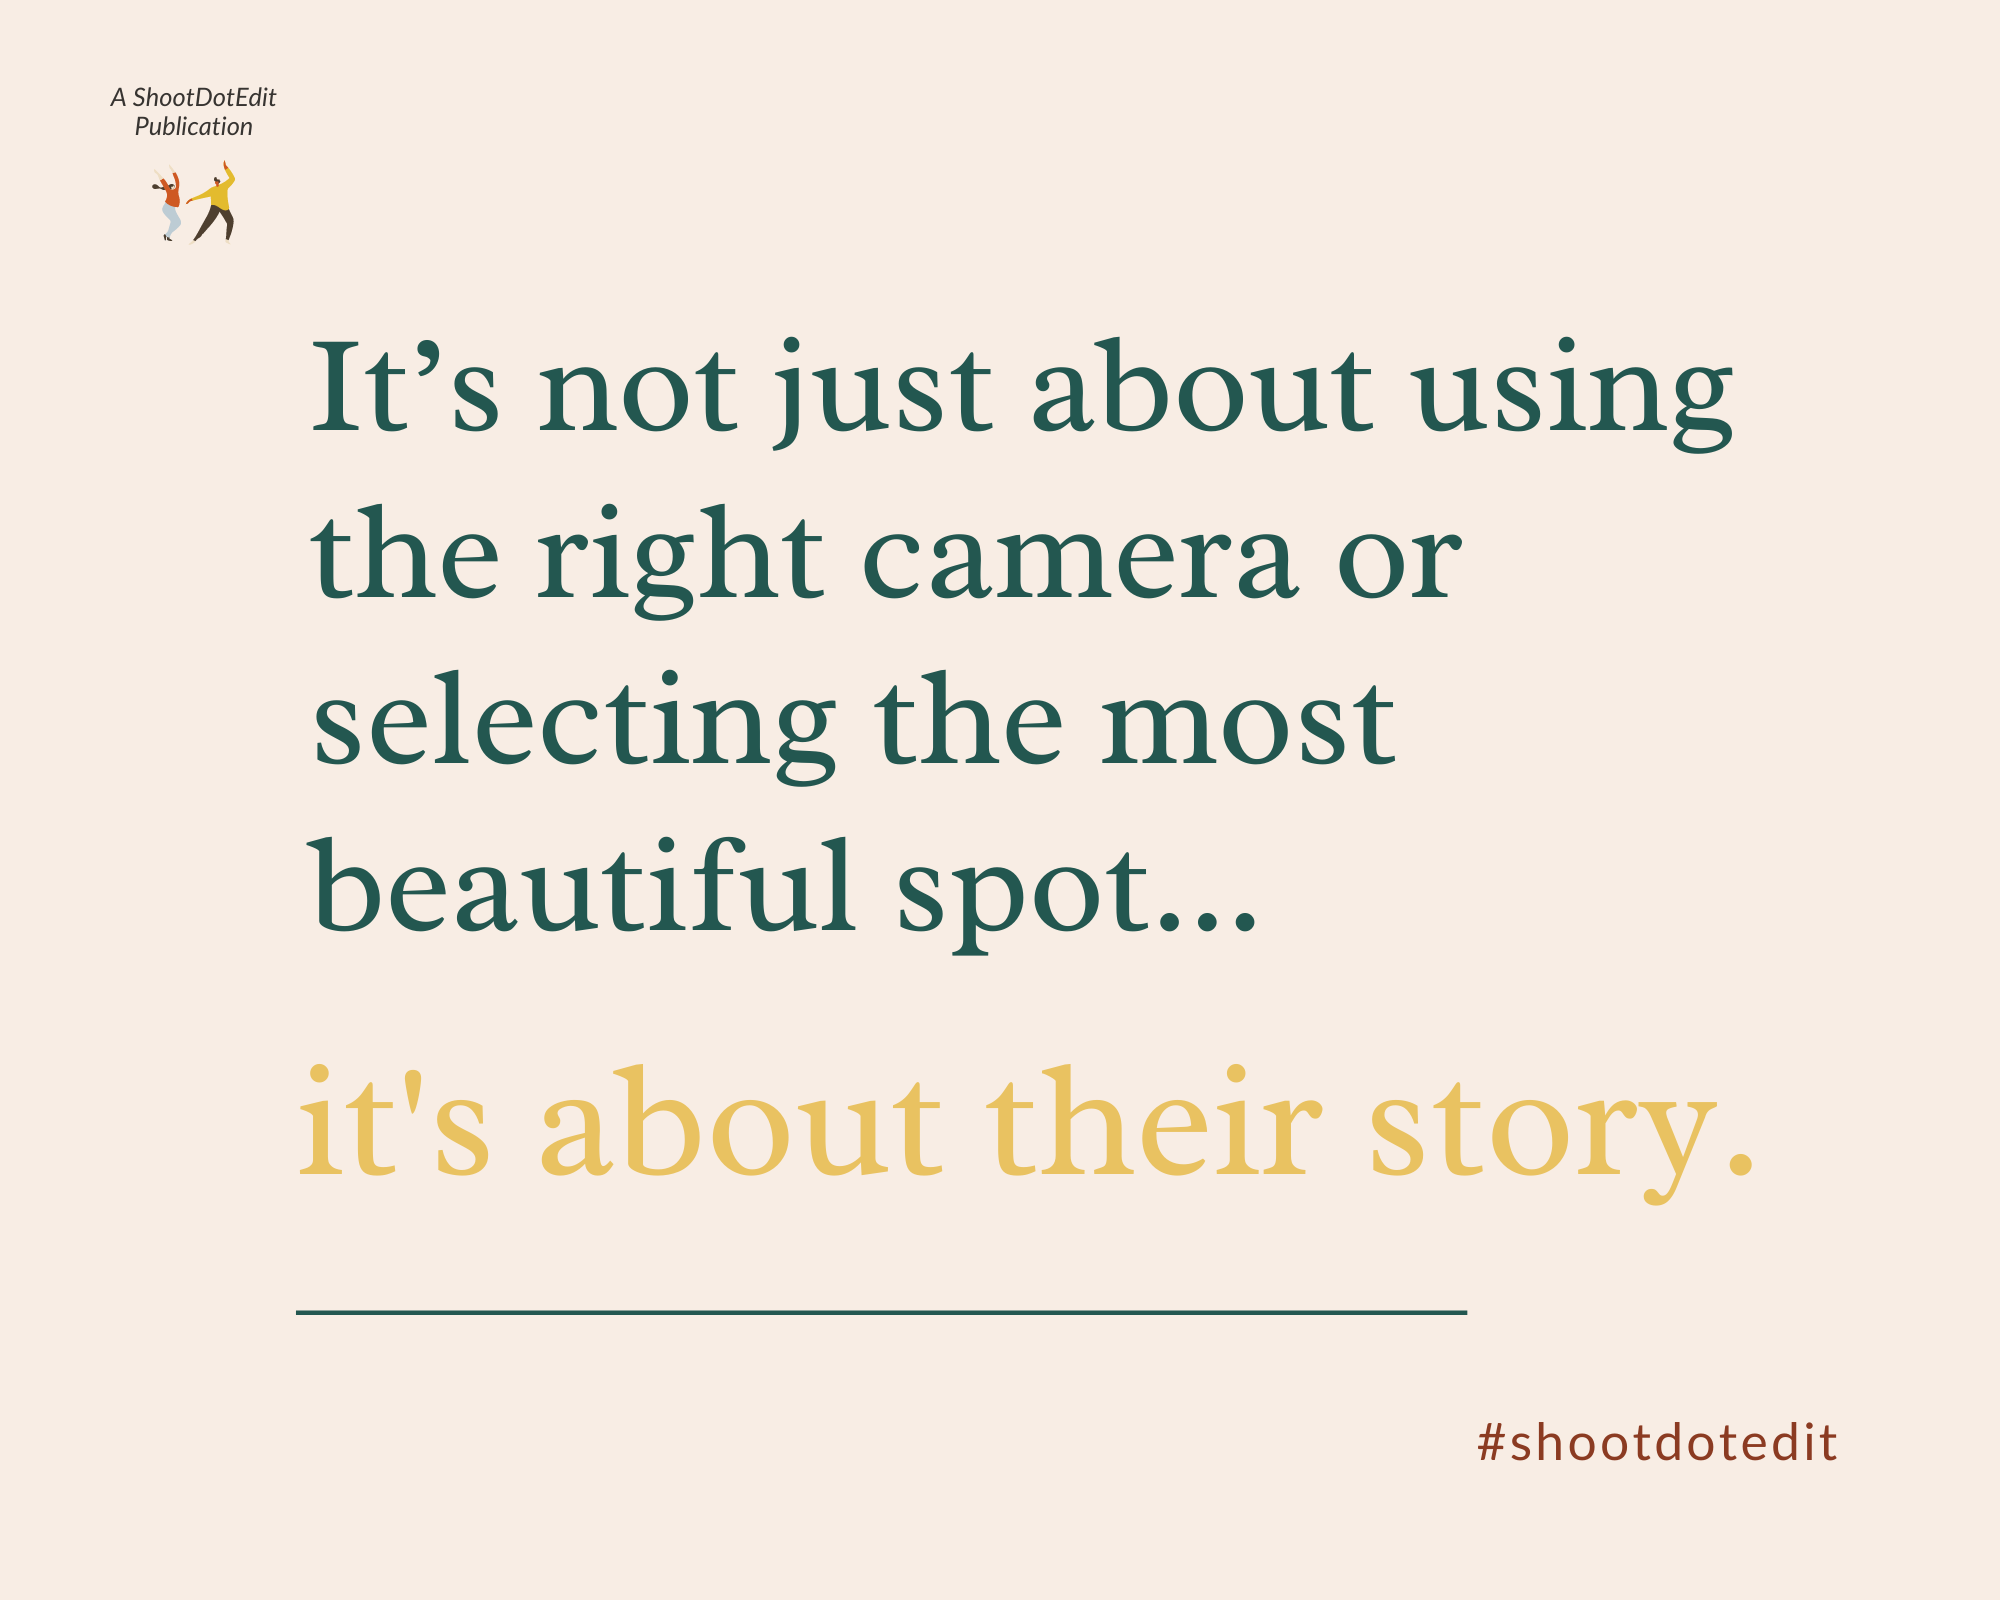 Graphic displaying - It's not just about using the right camera or selecting the most beautiful spot, it's about their story.